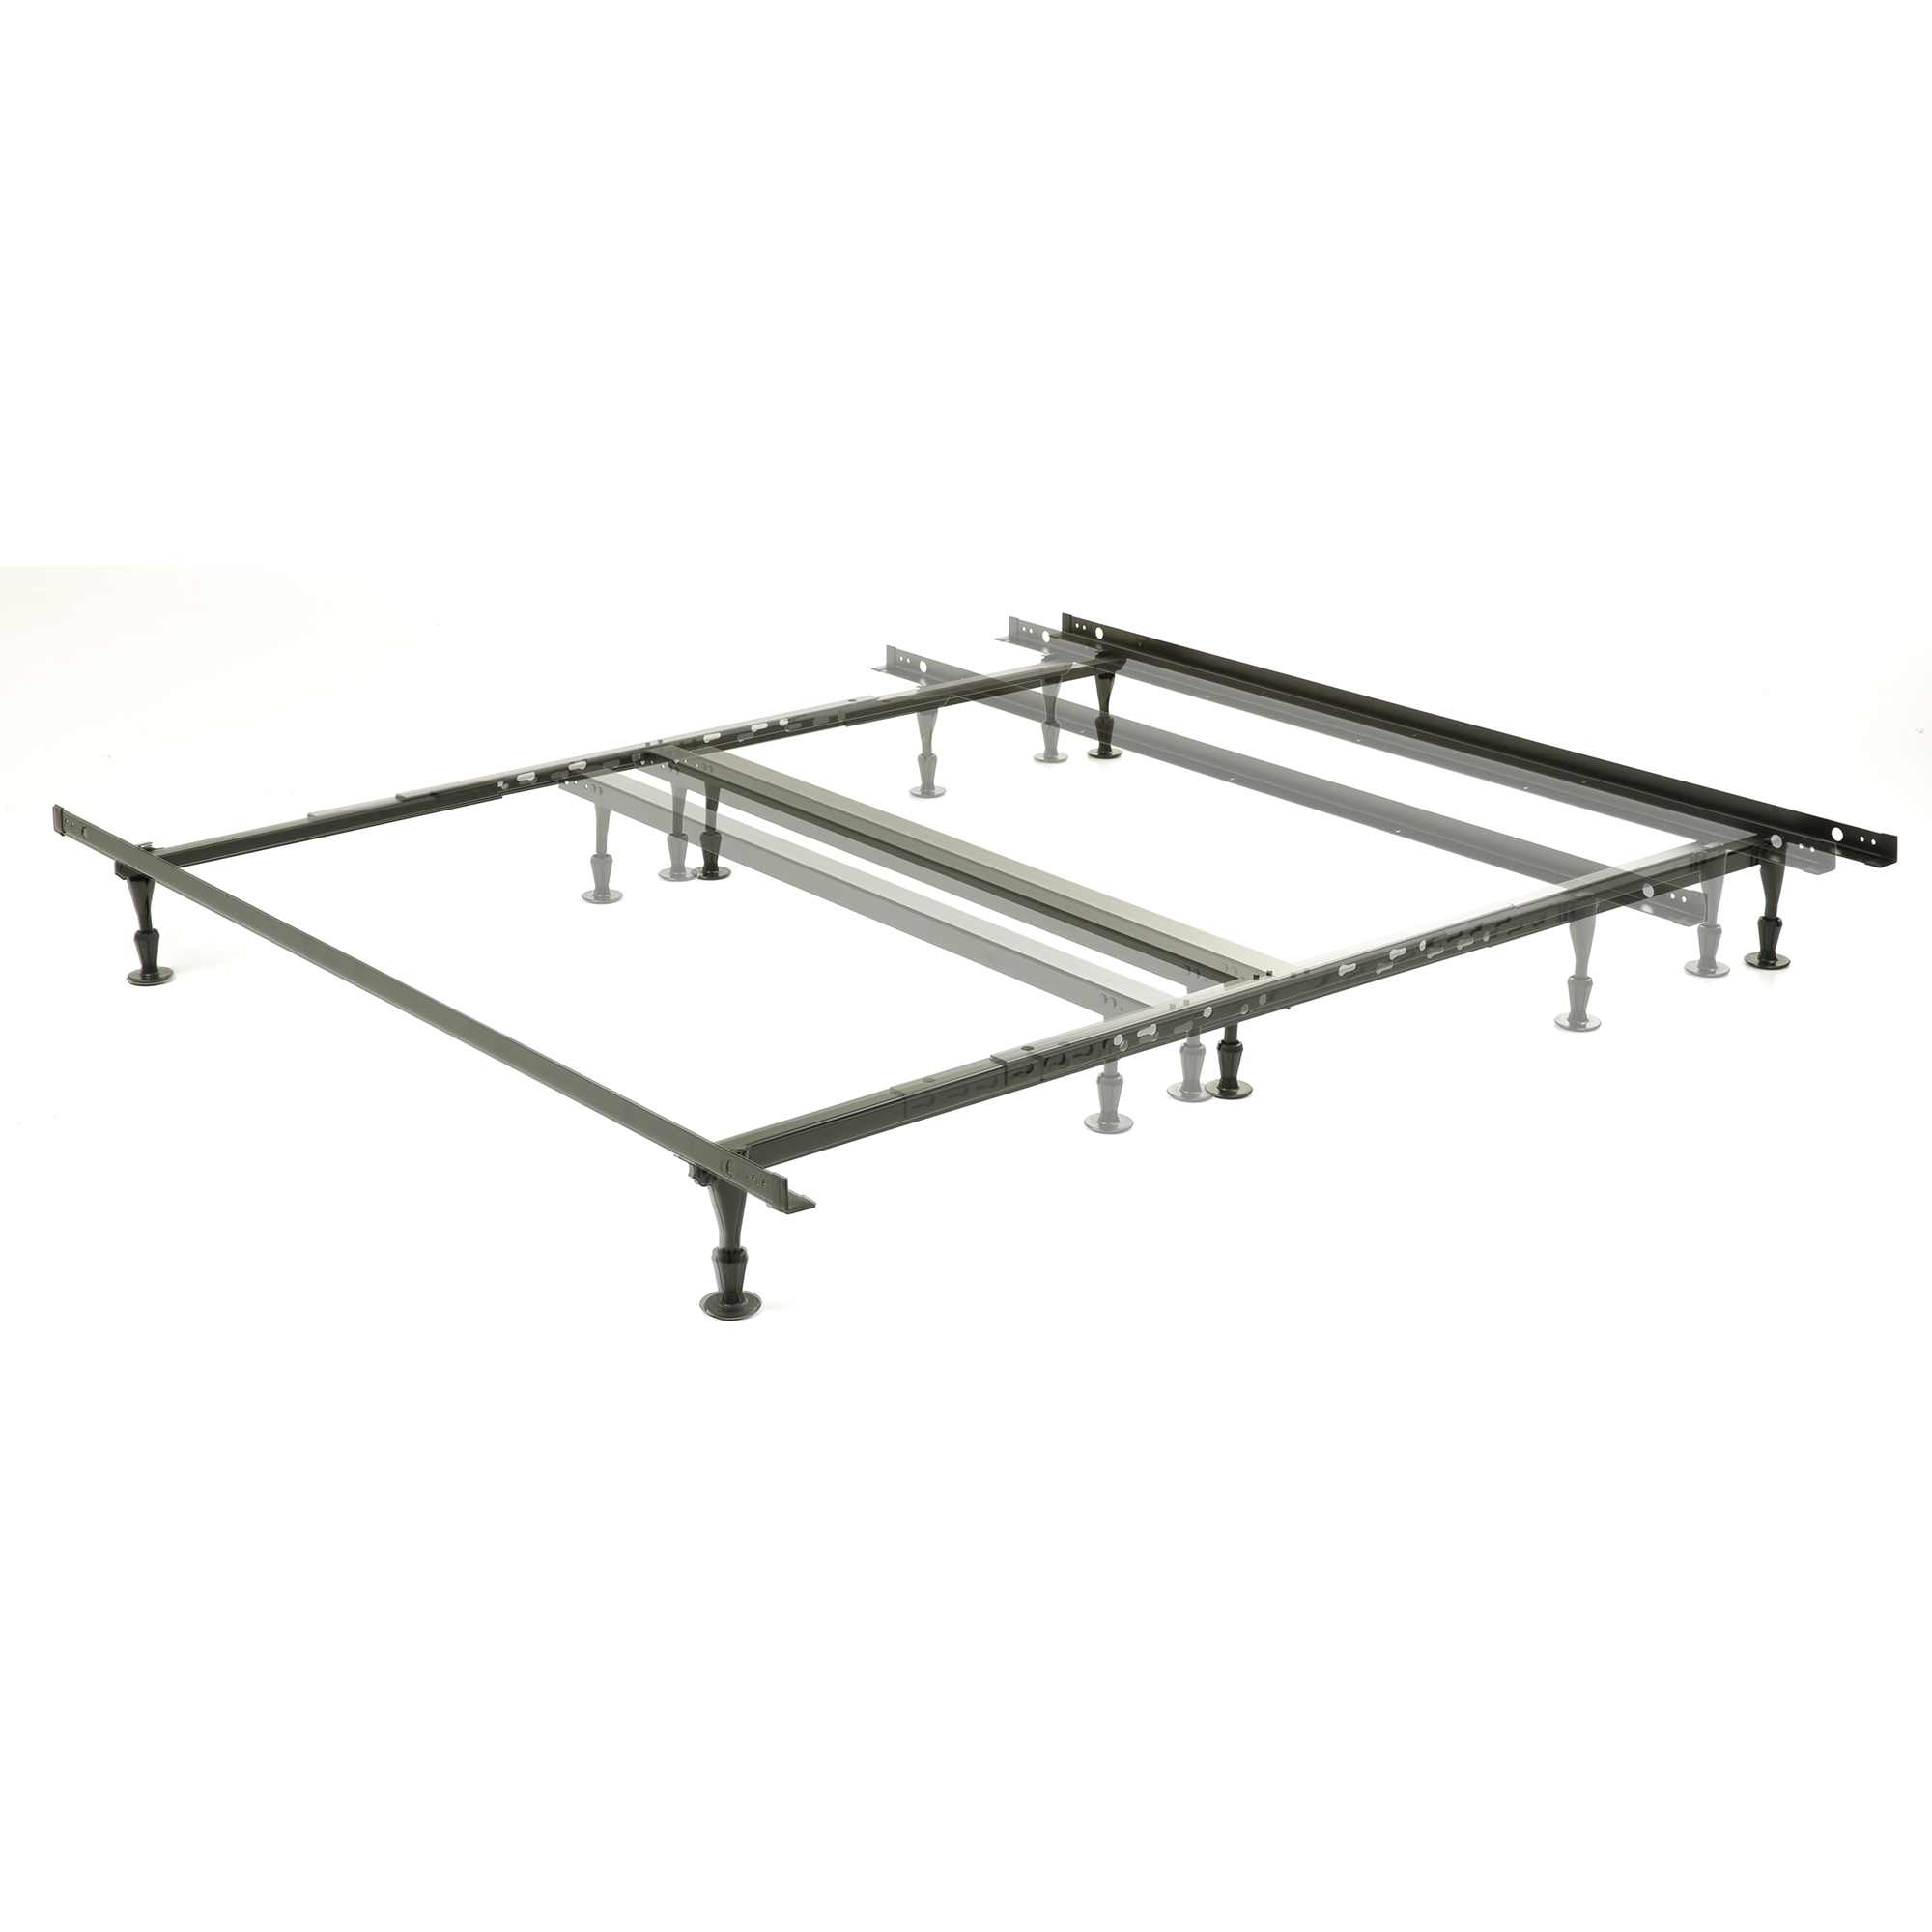 harvard adjustable nh850g heavy duty bed frame with keyhole cross arms and 6 2